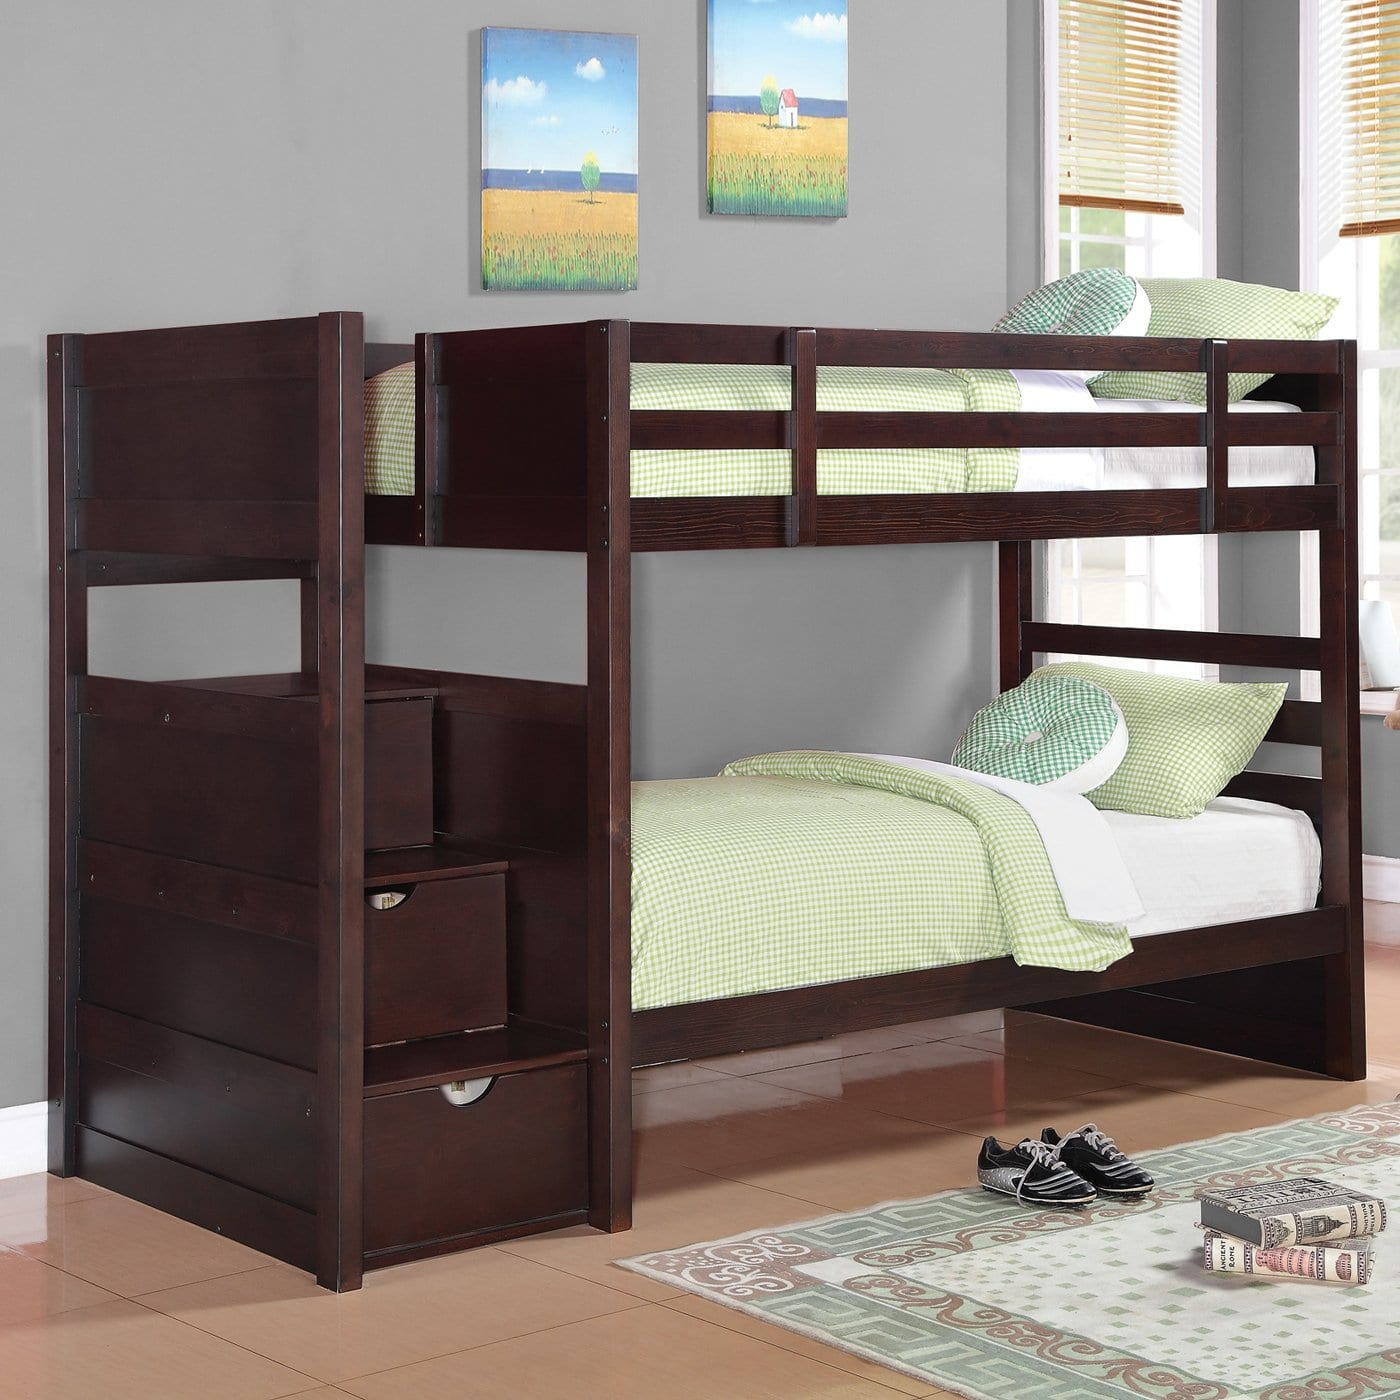 Coaster Elliott bunk bed, twin over twin in cappuccino finish with stairway drawers. by Coaster